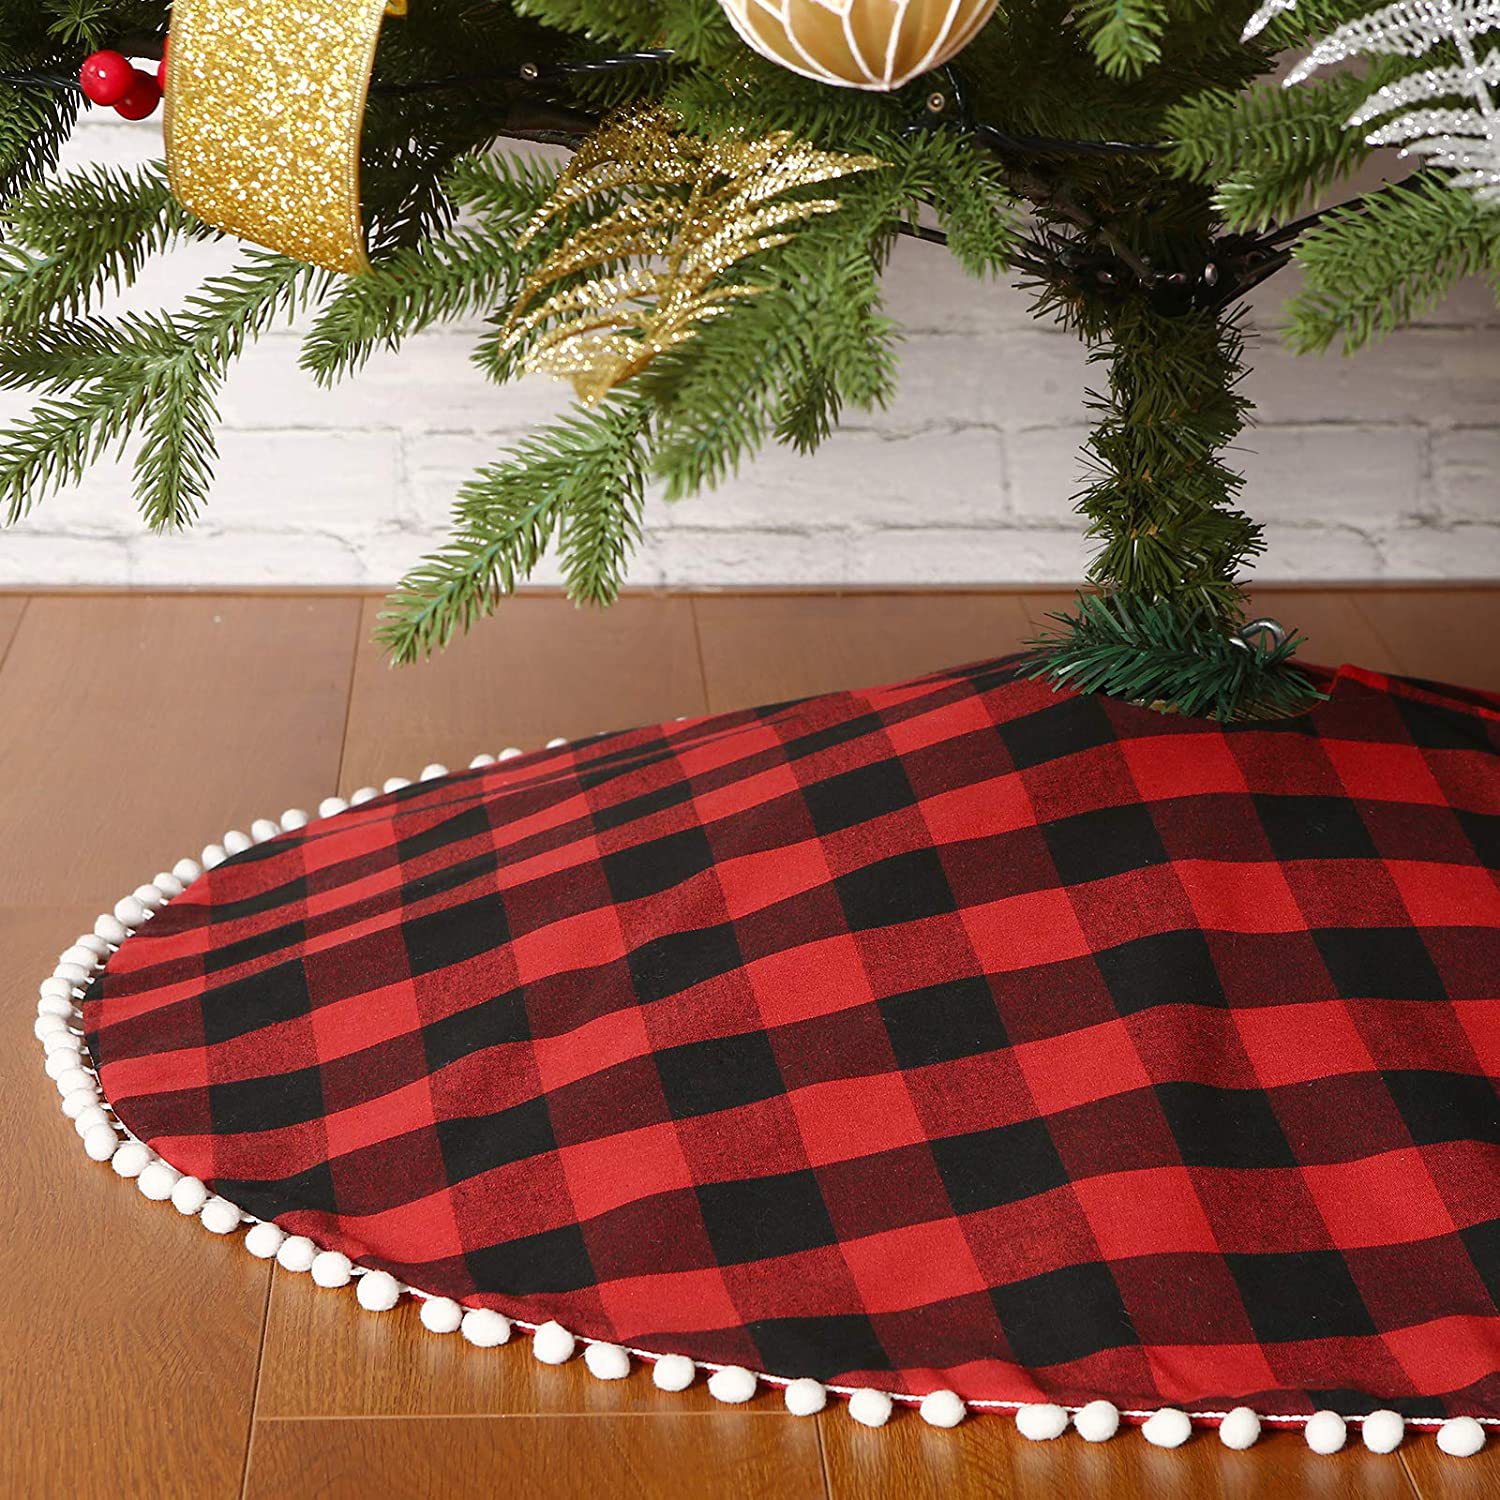 Christmas Tree Skirt In Buffalo Red Black Check Knit With Cream Fleece Trim 47 For Sale Online Ebay